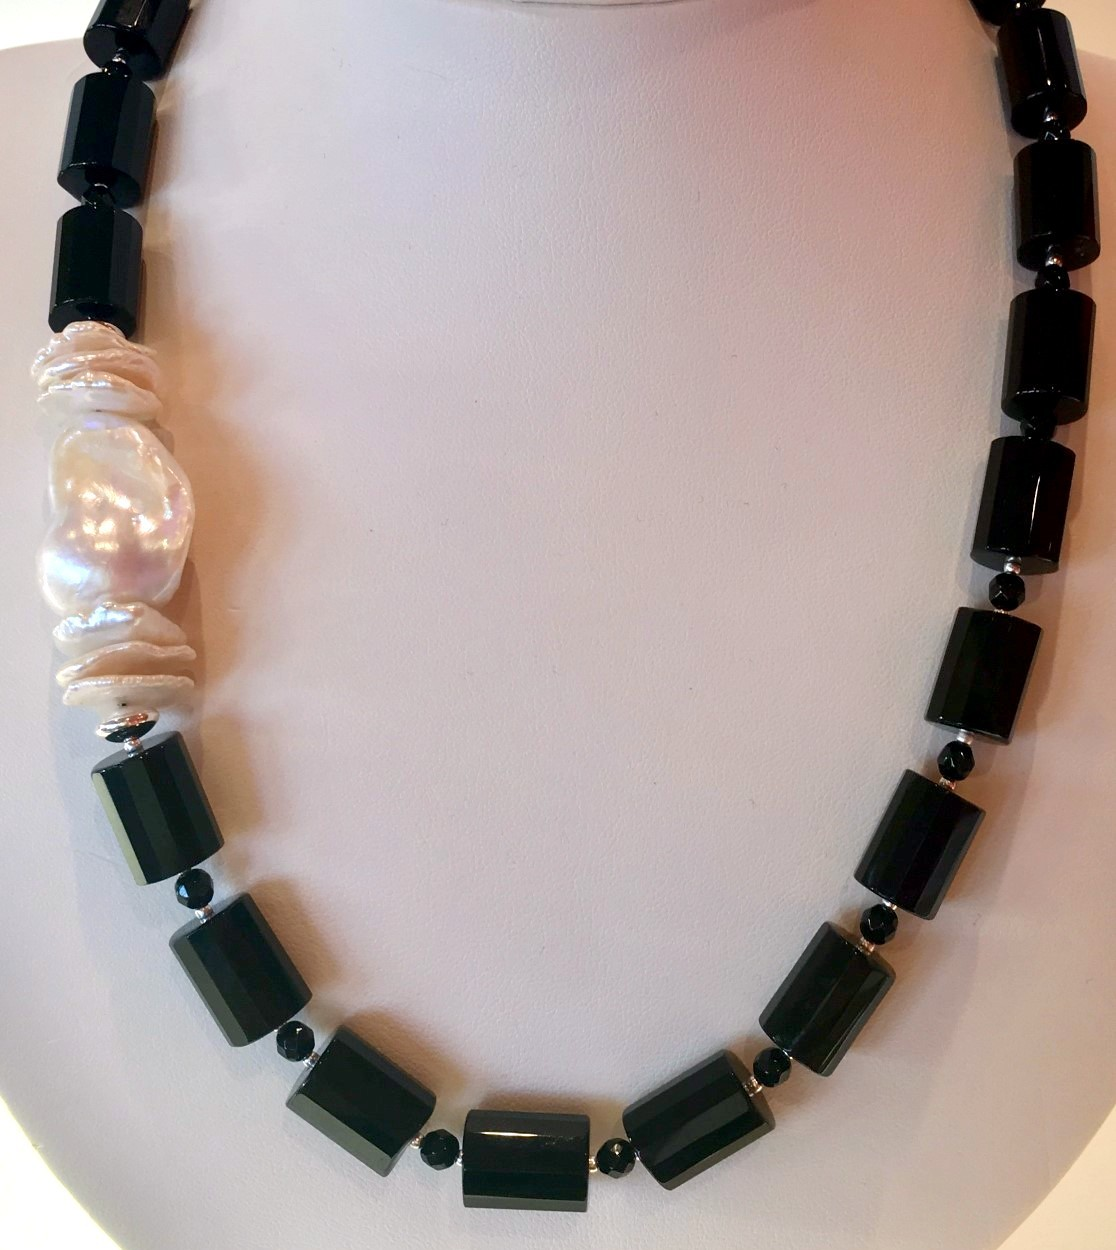 pearl jewelry, freshwater pearls, murano glass jewelry, sea glass jewelry, onyx jewelry, necklace, baroque pearls,keshi pearl